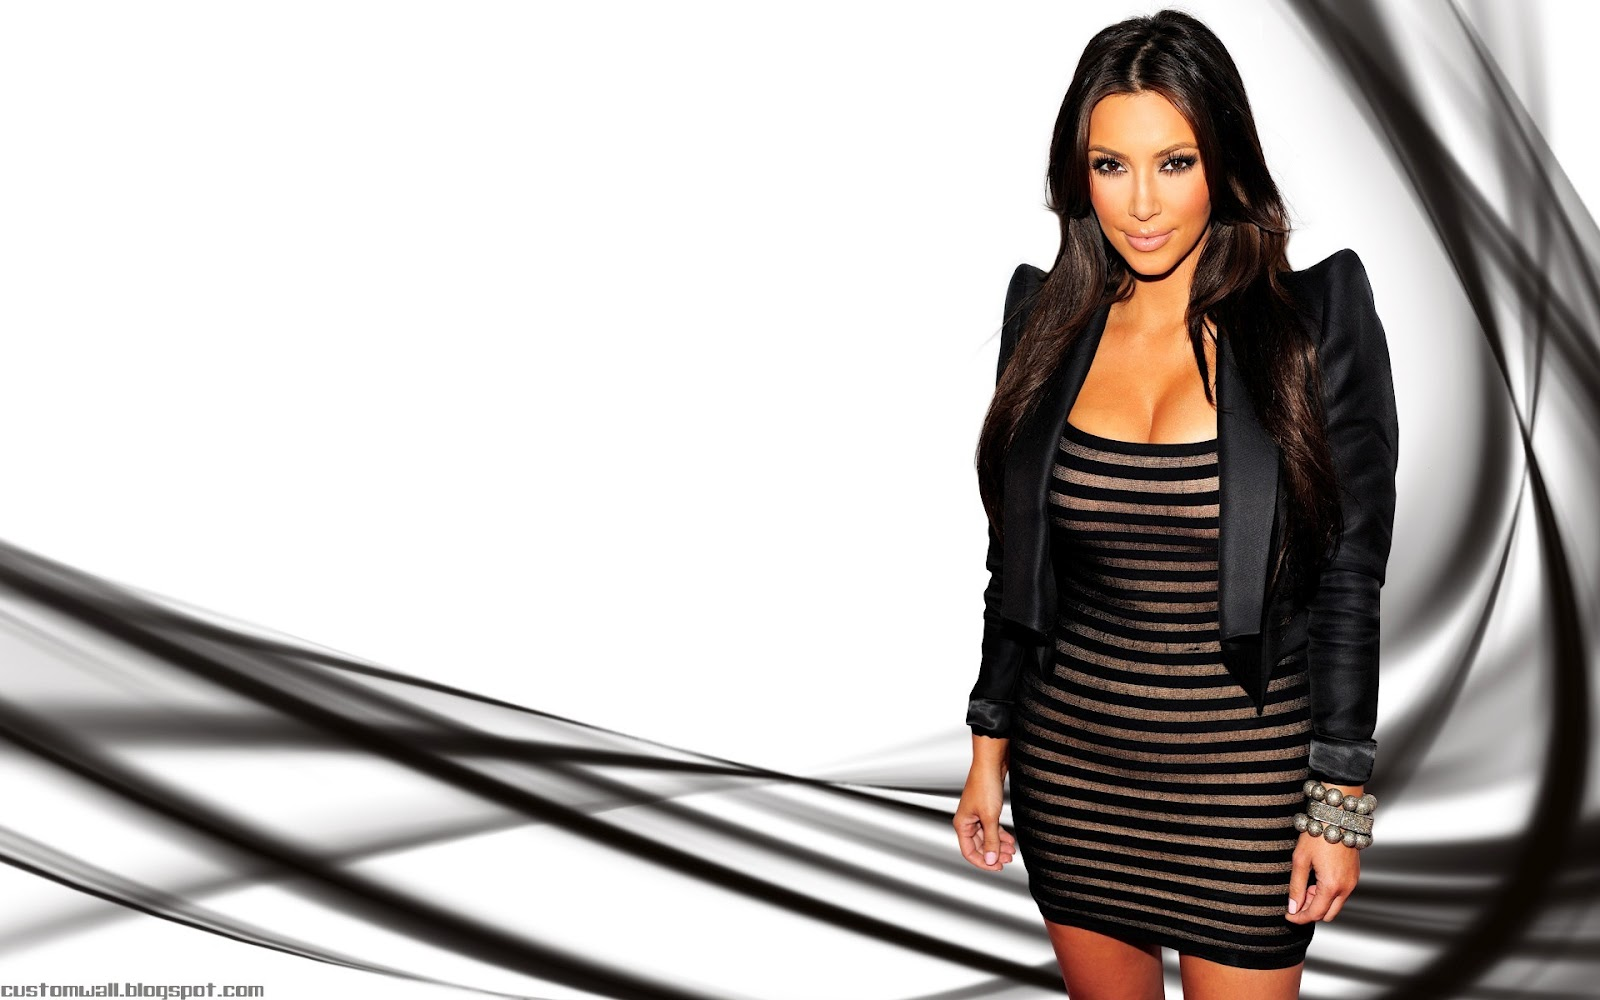 Hd Wallpapers Kim Kardaan 1600x1000